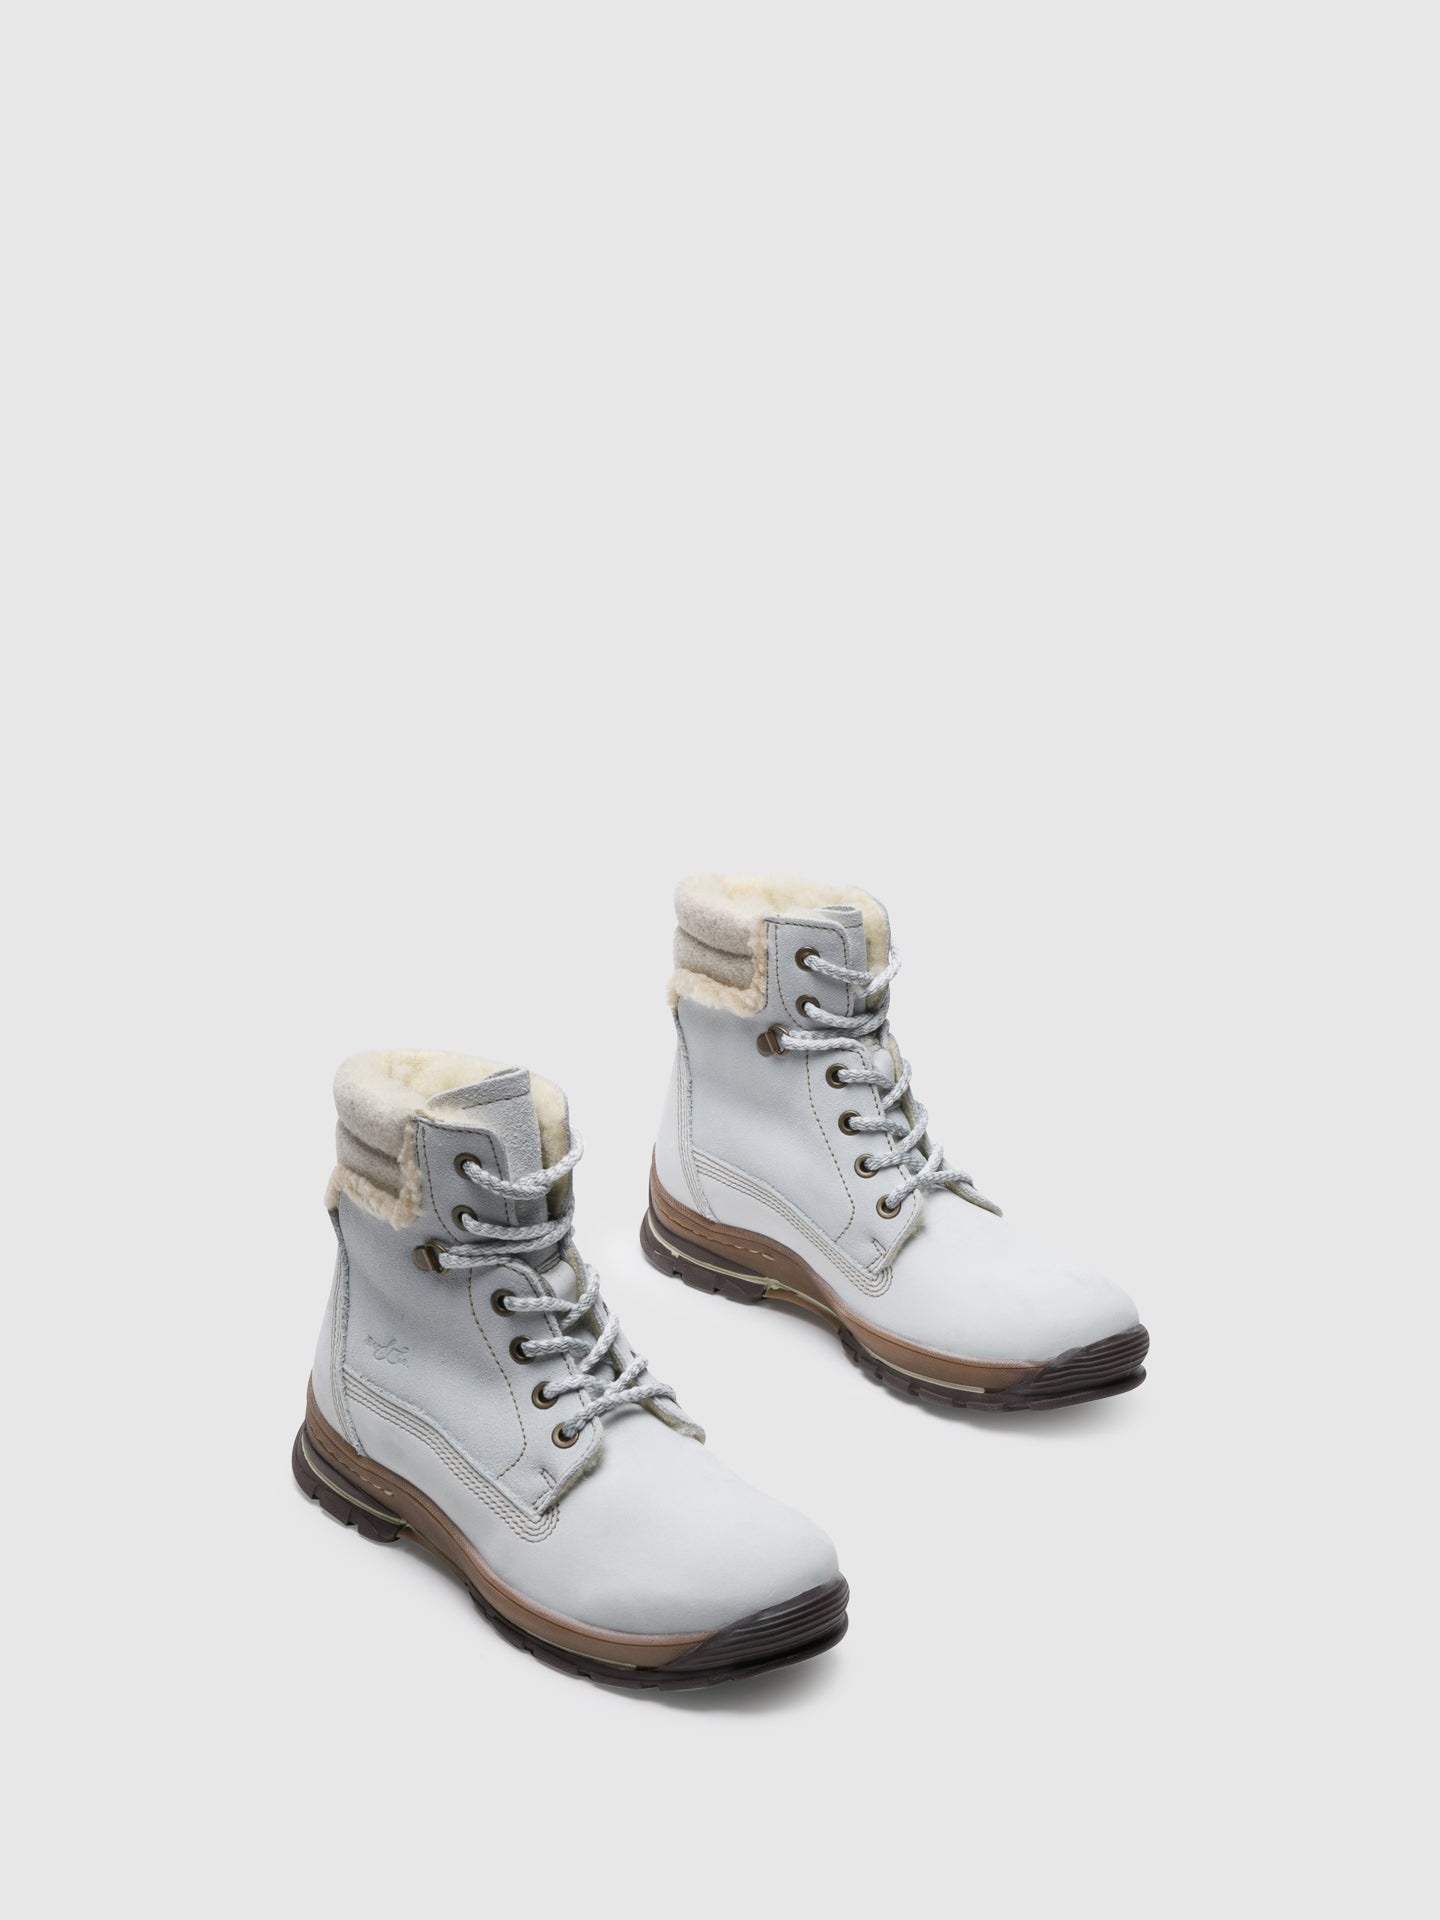 Bos&Co White Lace-up Ankle Boots